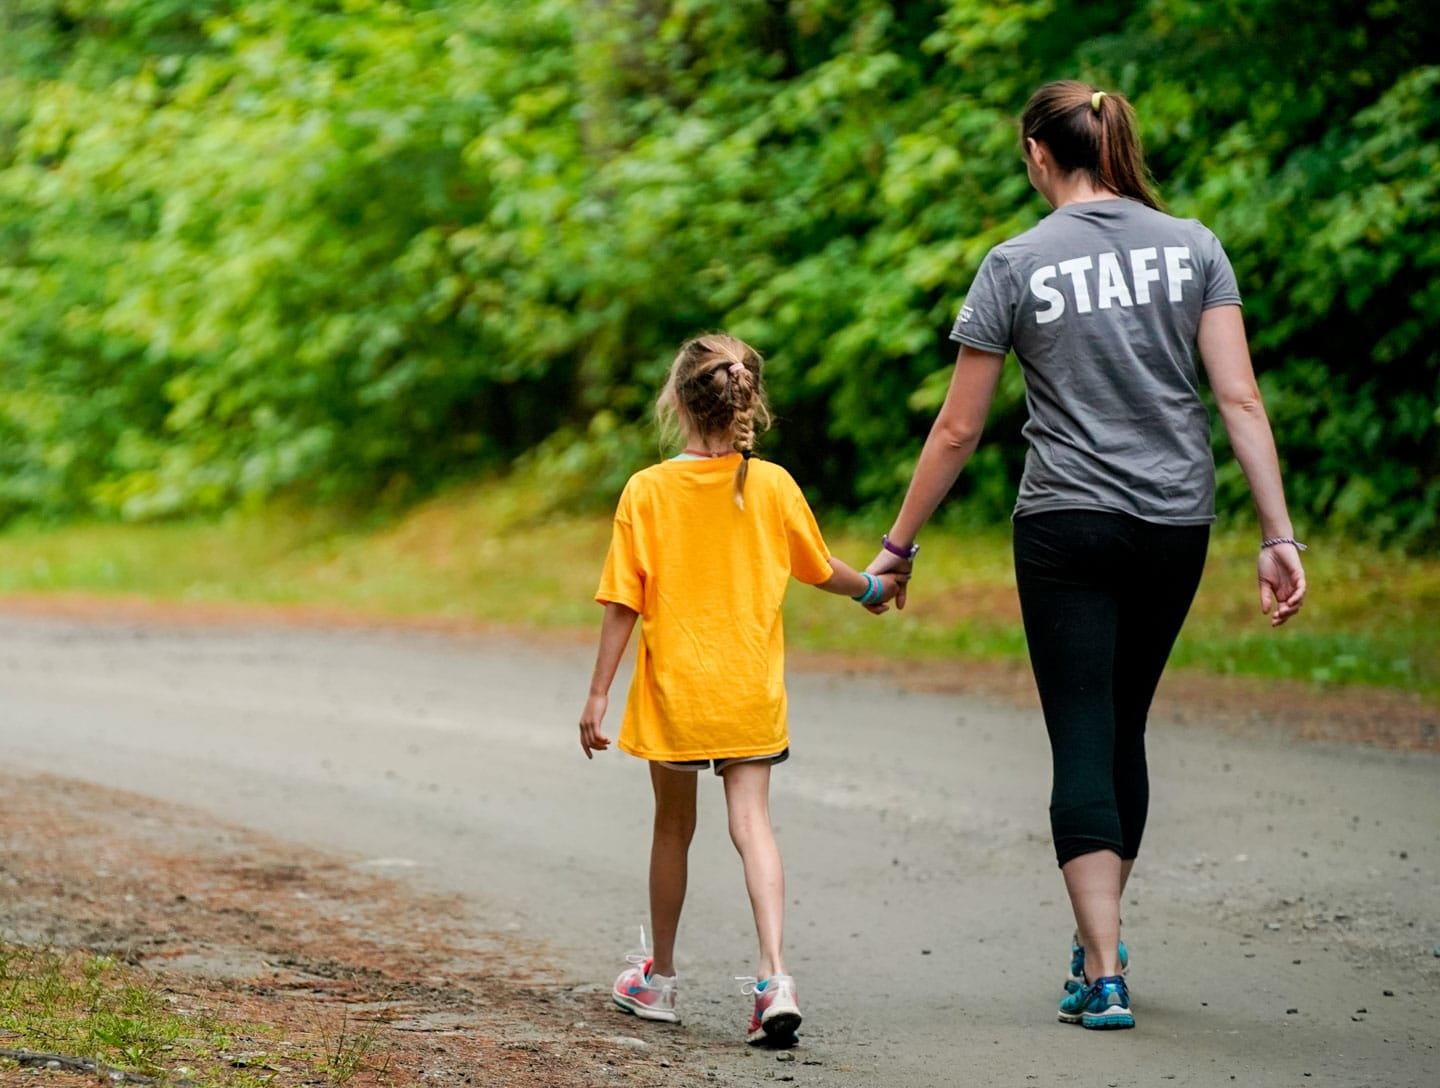 a young camper and a counselor walking down the road holding hands